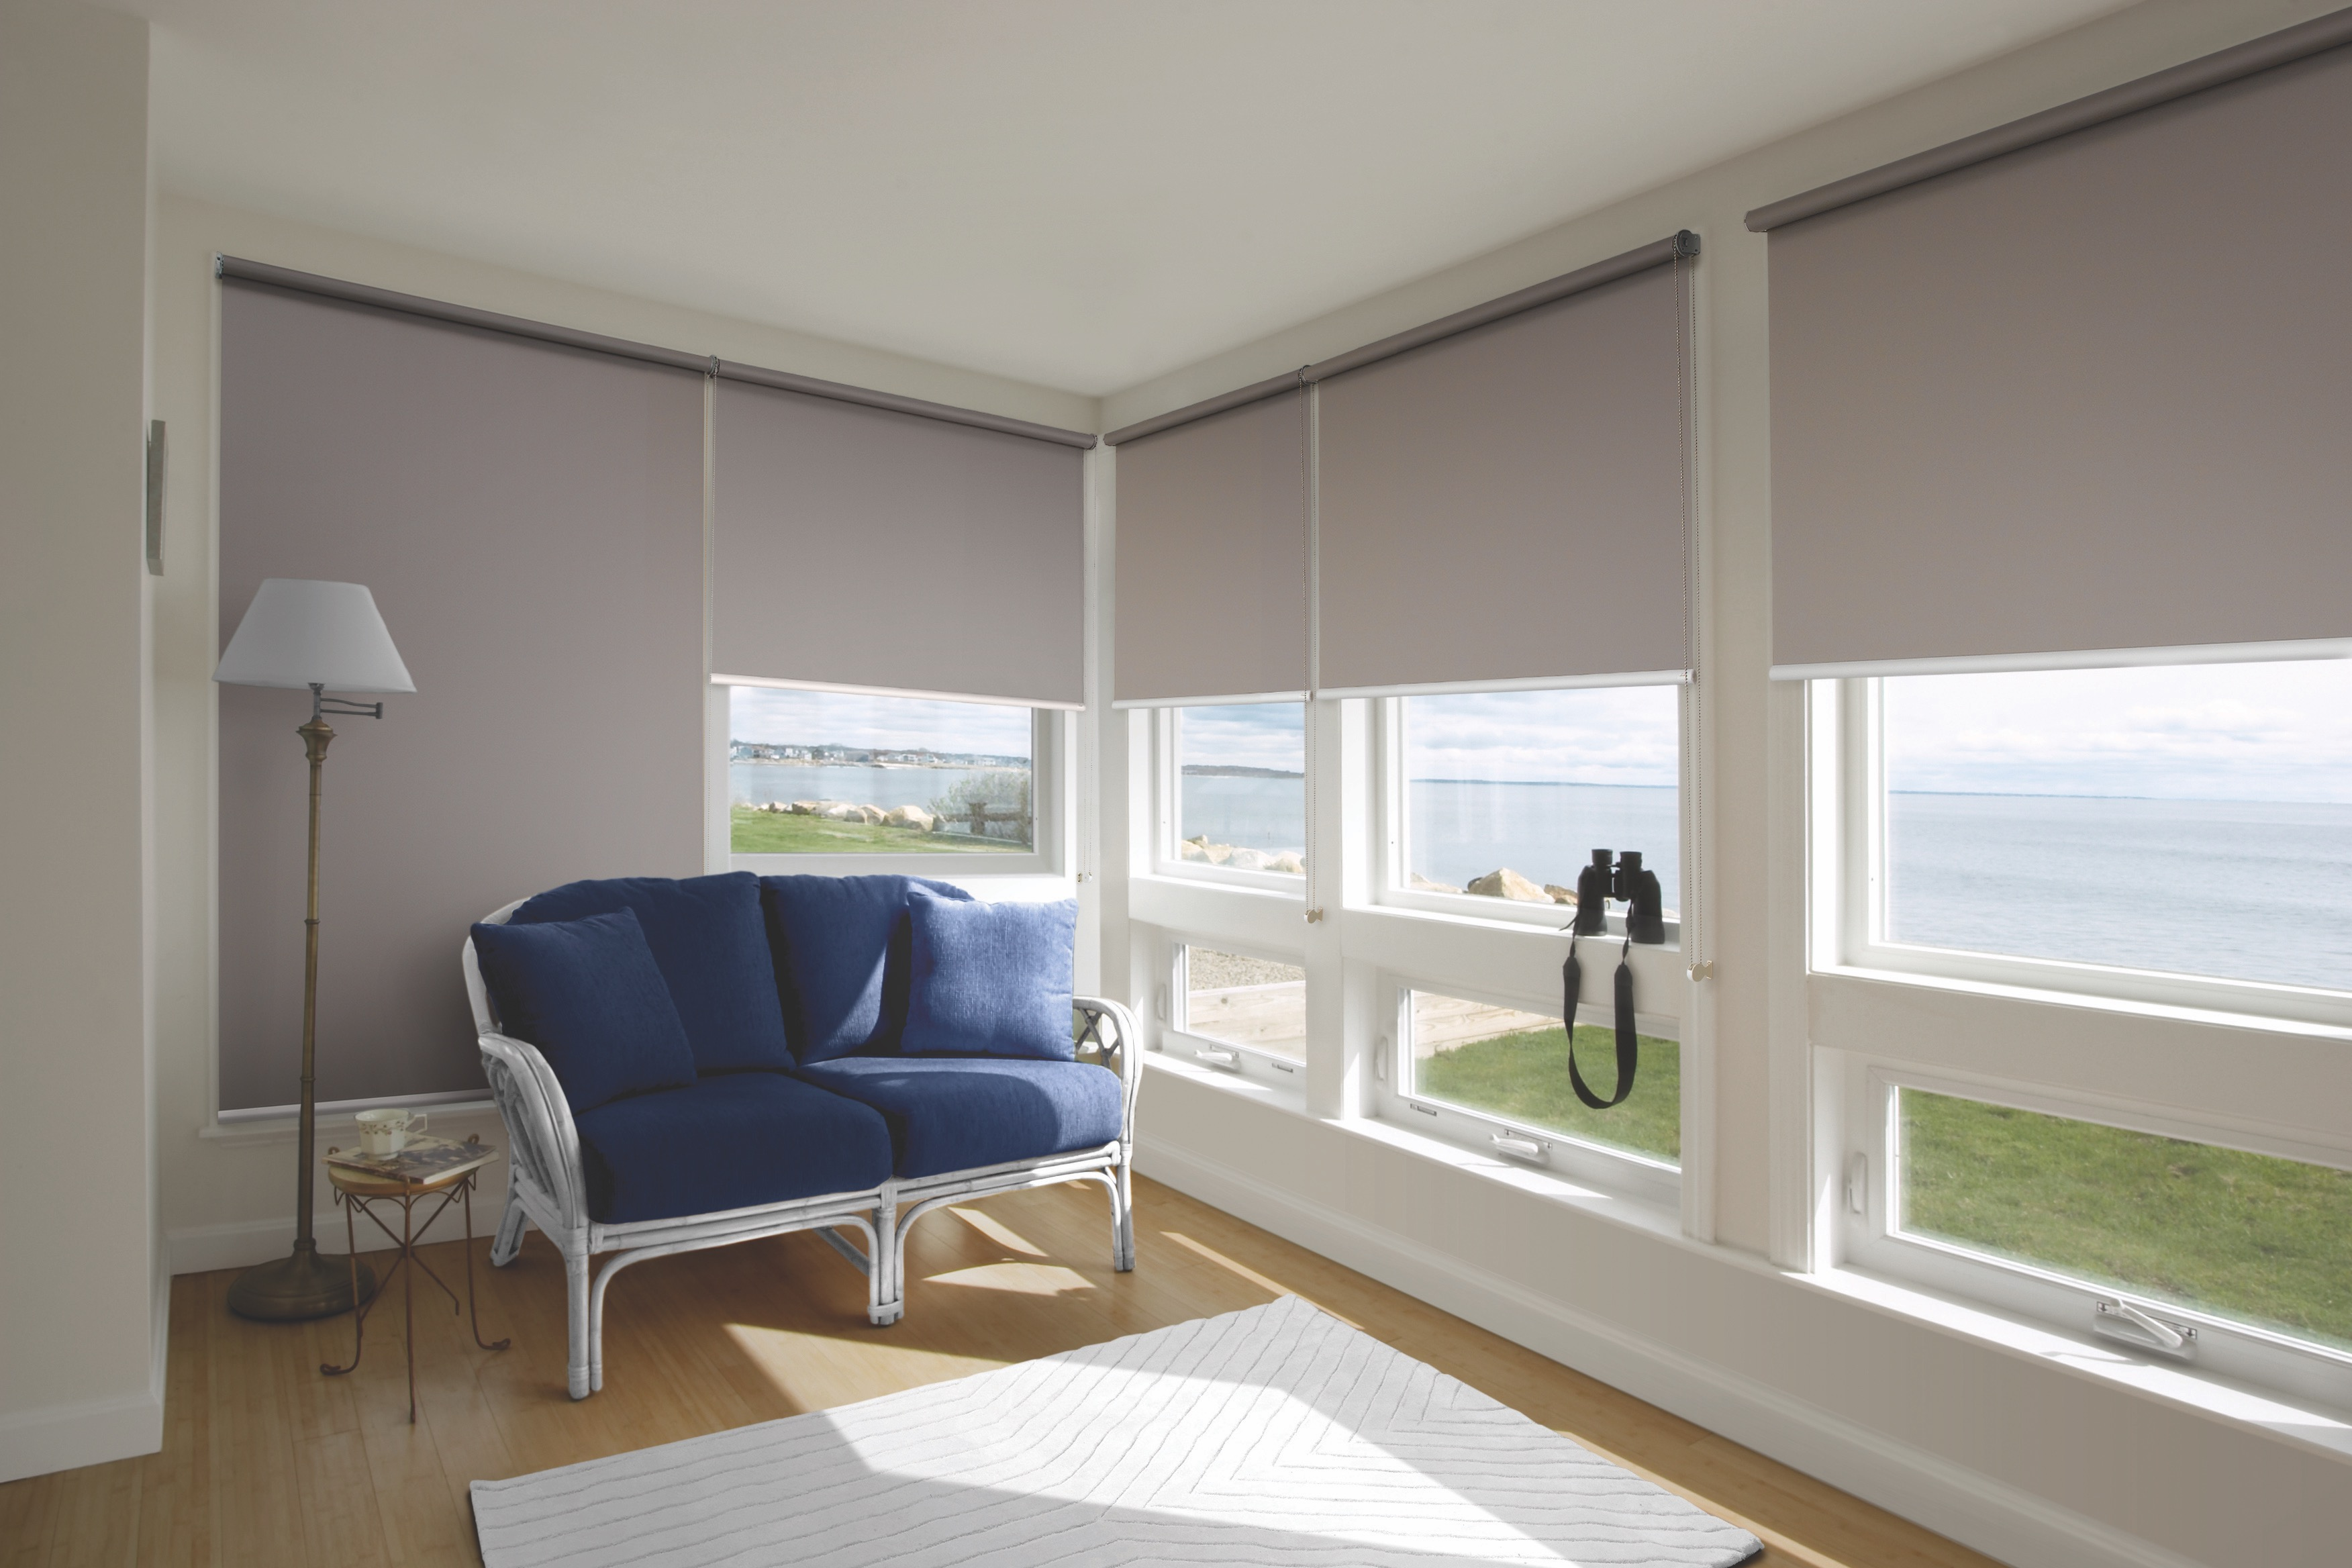 The meticulously designed Roller blinds gives the best protection of sun rays and privacy